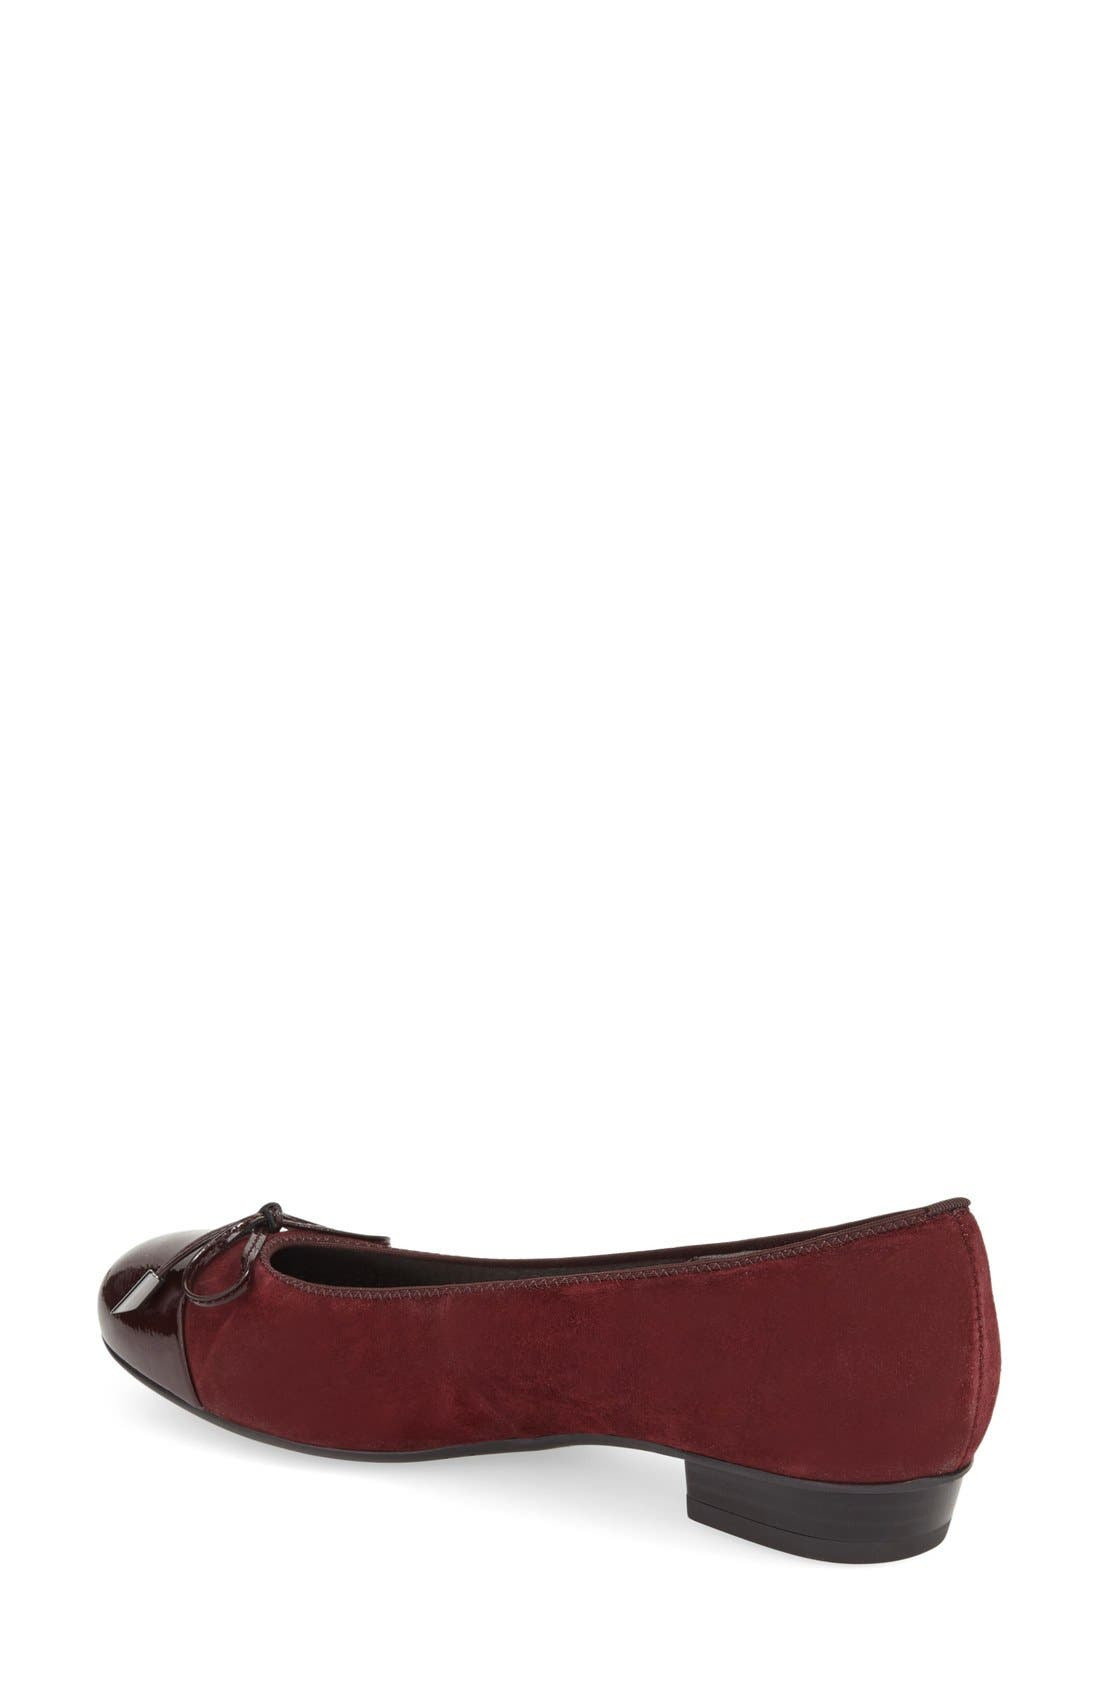 'Betty' Cap Toe Flat,                             Alternate thumbnail 2, color,                             BURGUNDY PATENT LEATHER